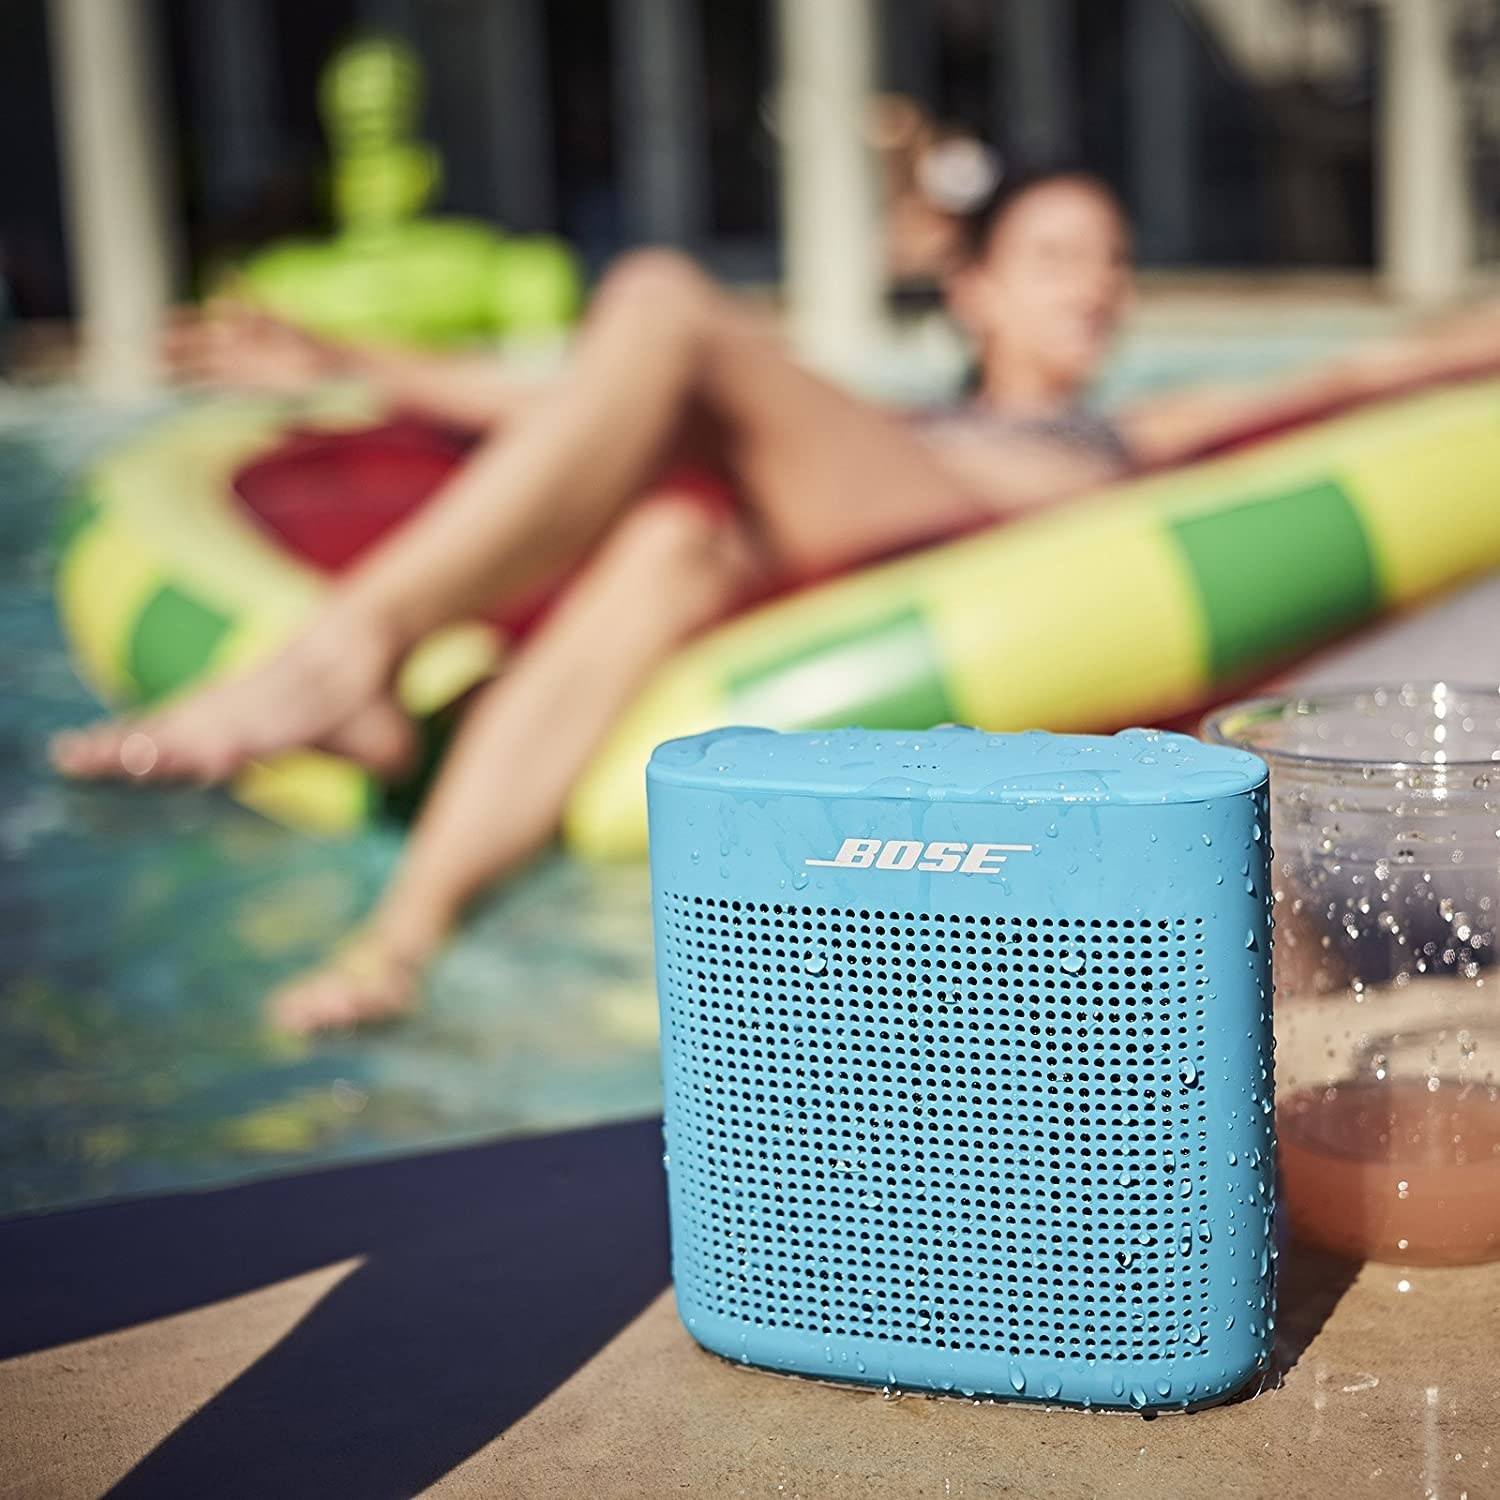 A small Bluetooth speaker on the edge of a pool